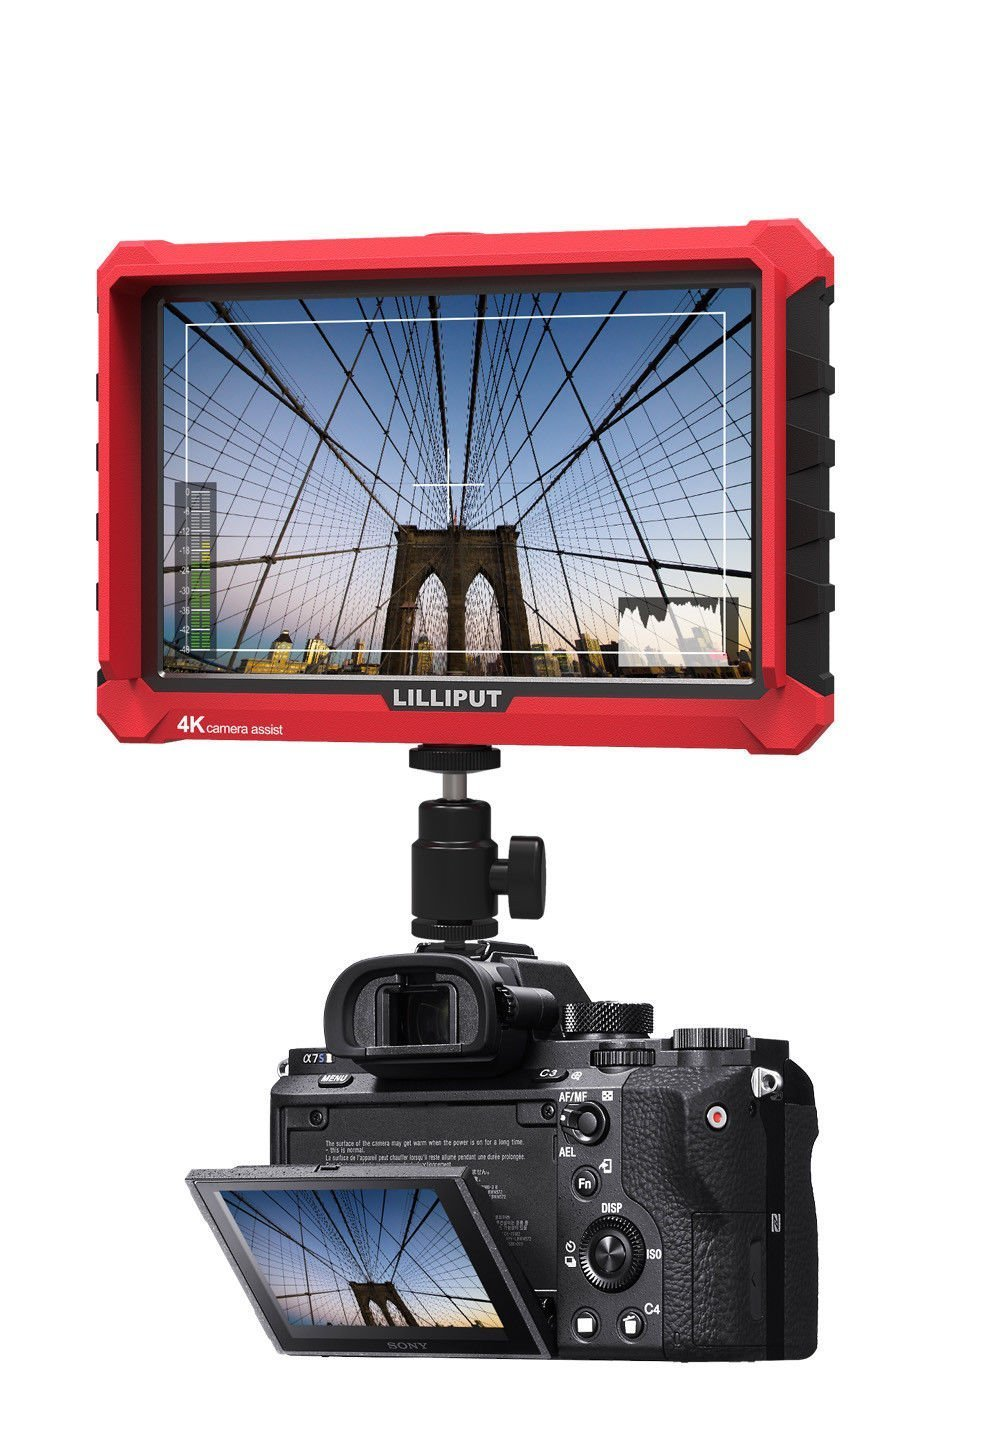 Lilliput A7S 7 Inch On Camera Field Monitor Supports 4K HDMI Input Loop Output 1920x1200 Native Resolution 1000:1 Contrast 500cd/m2 Brightness 170 Degree Wide Viewing Angle + CANON LP-E6 battery plate by Lilliput